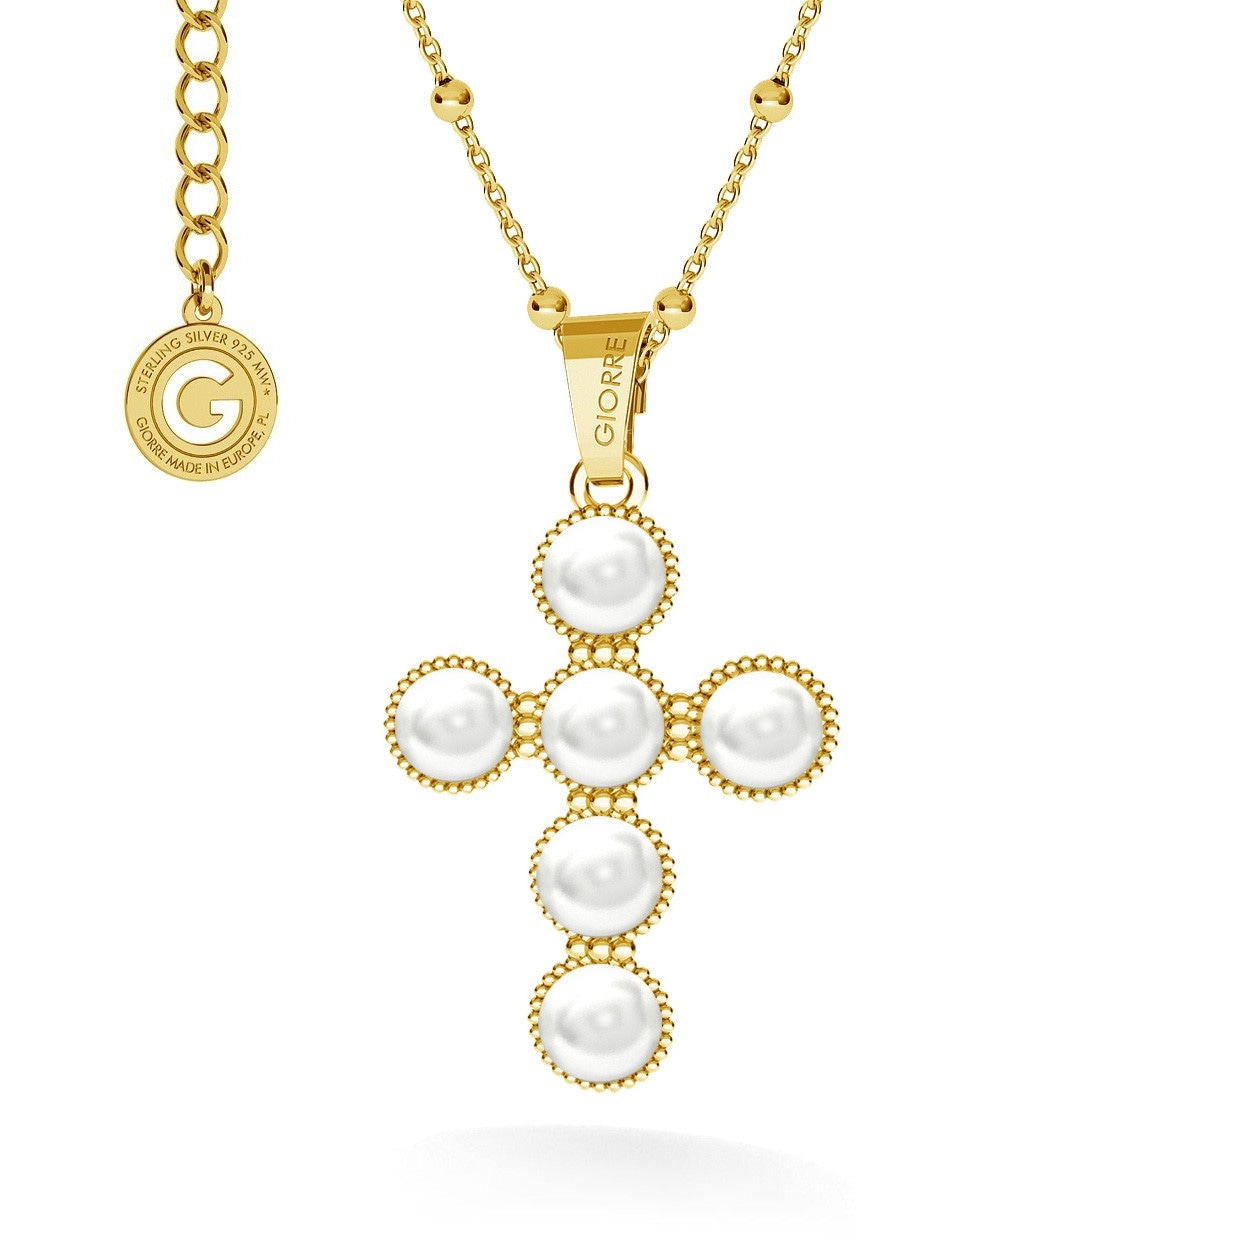 Giorre Woman's Necklace 34200